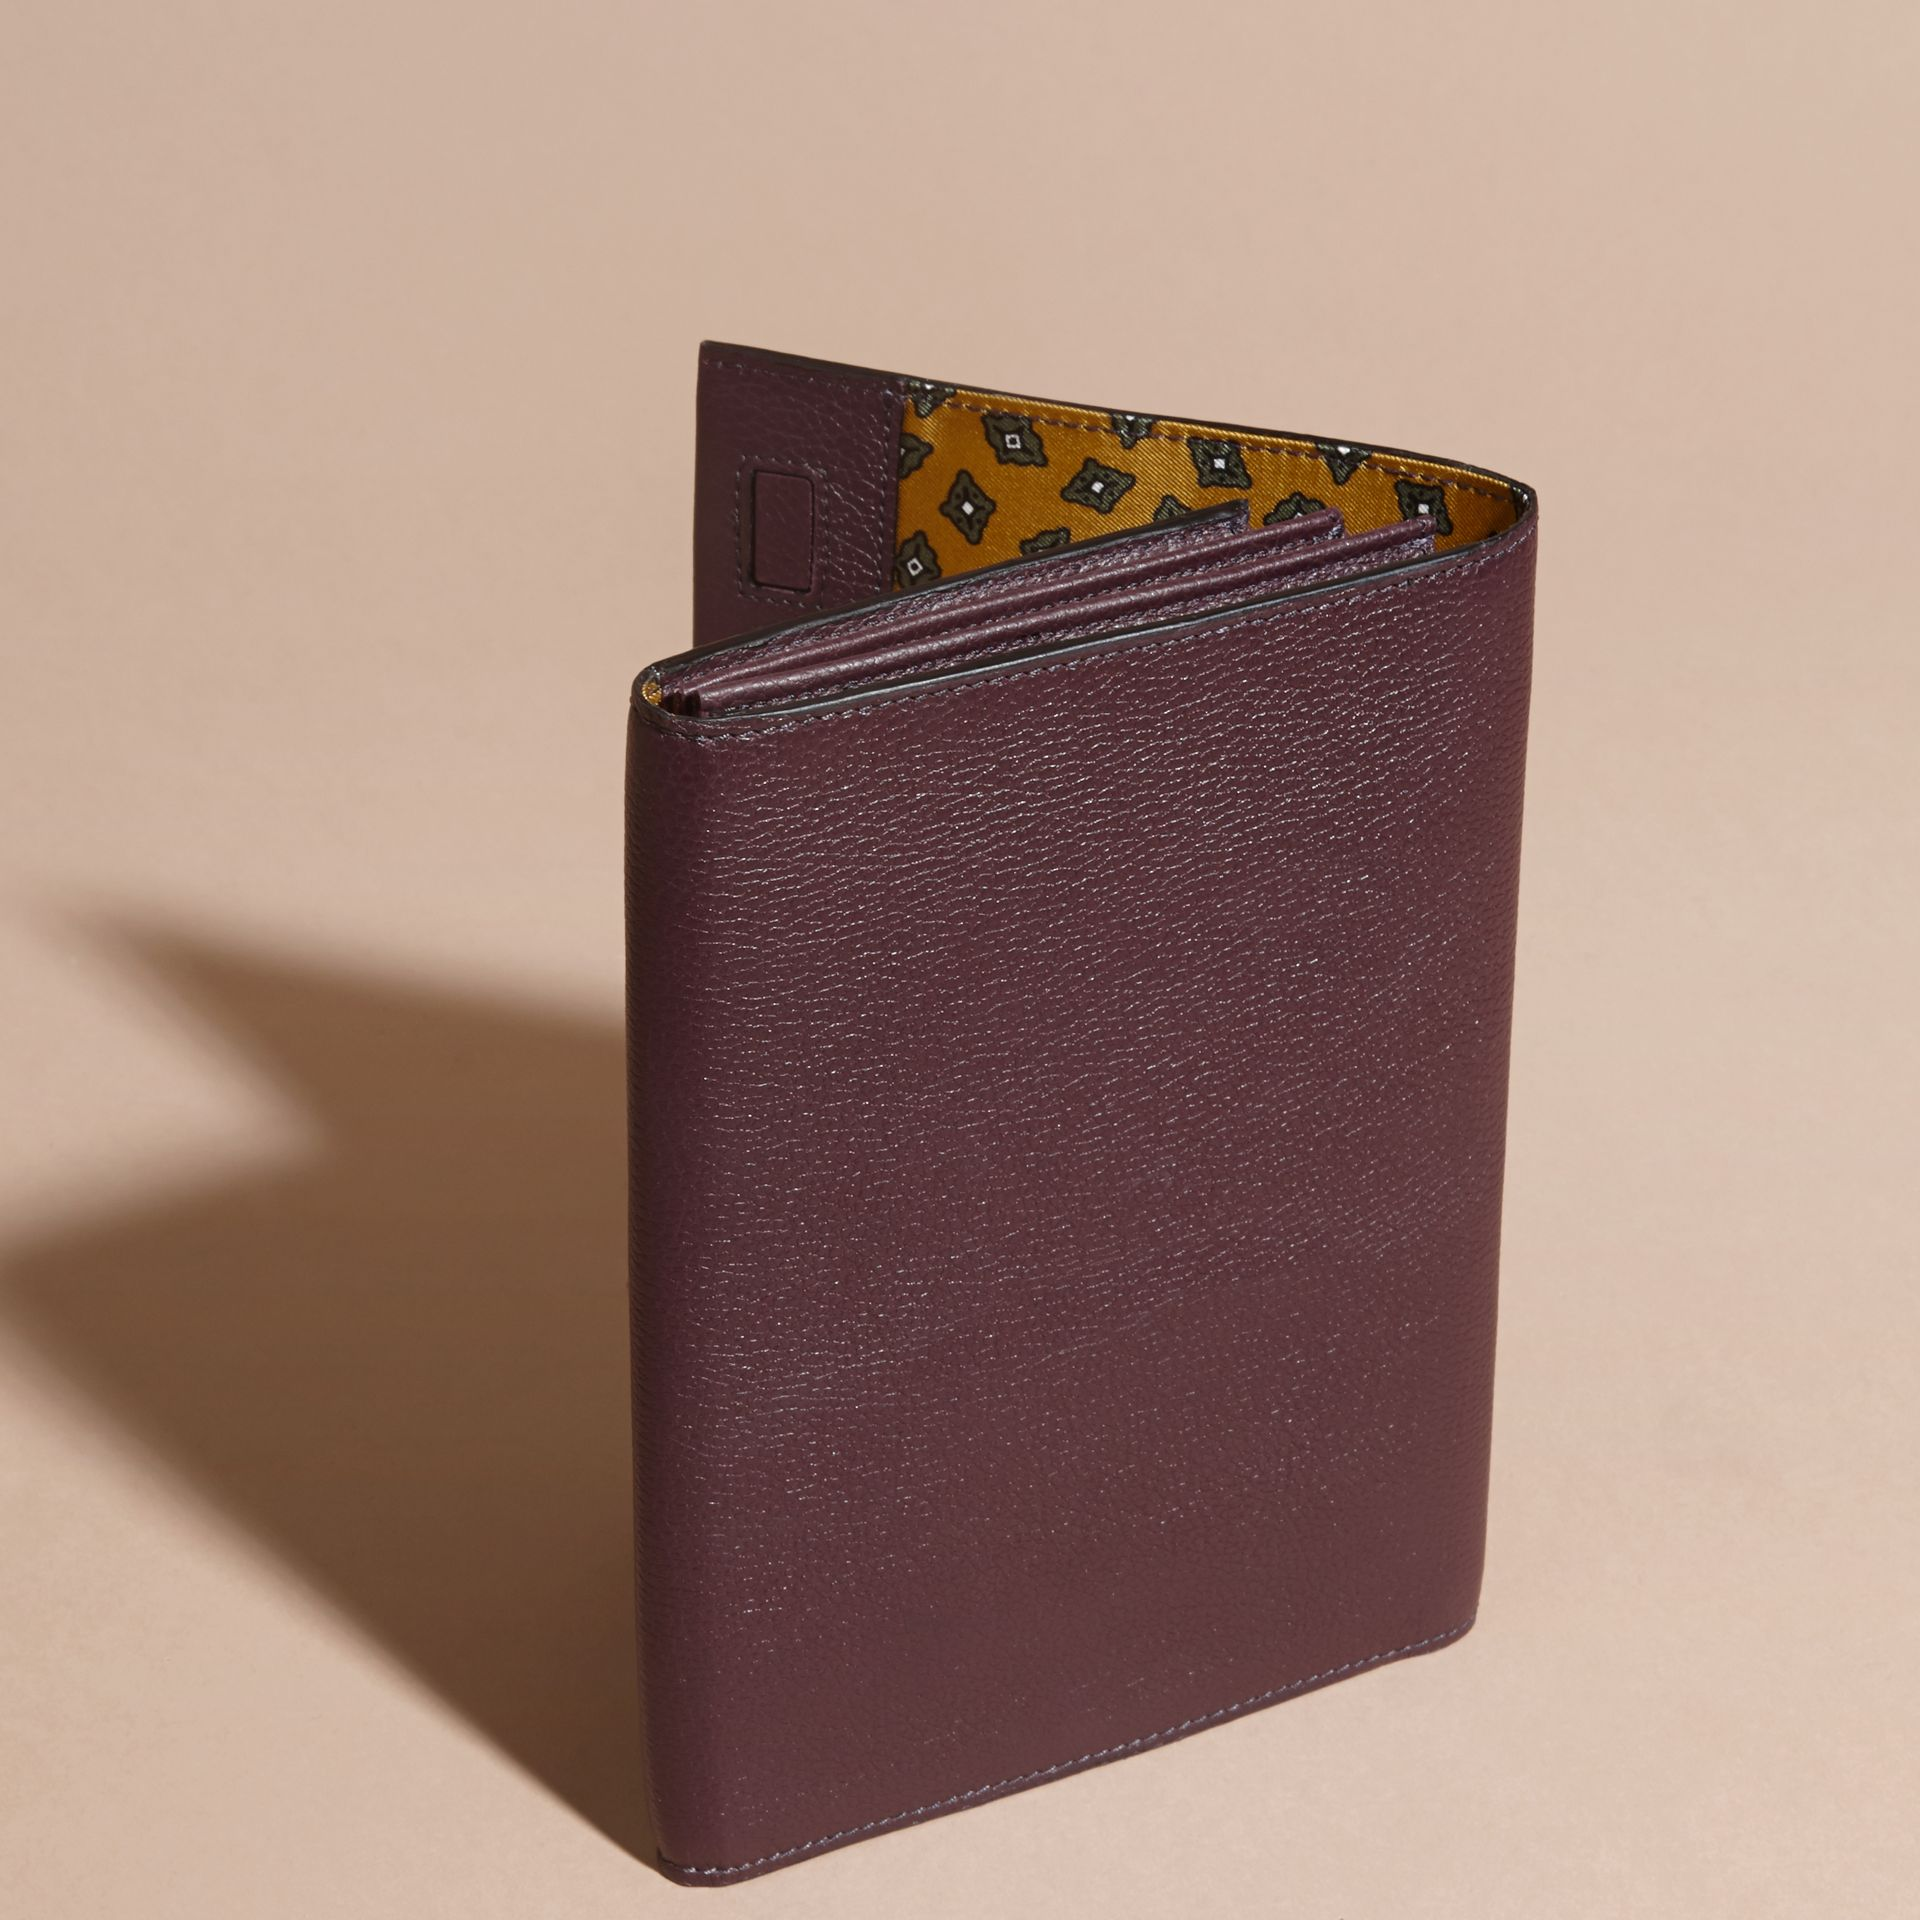 Dark amethyst Grainy Leather Travel Wallet Dark Amethyst - gallery image 4